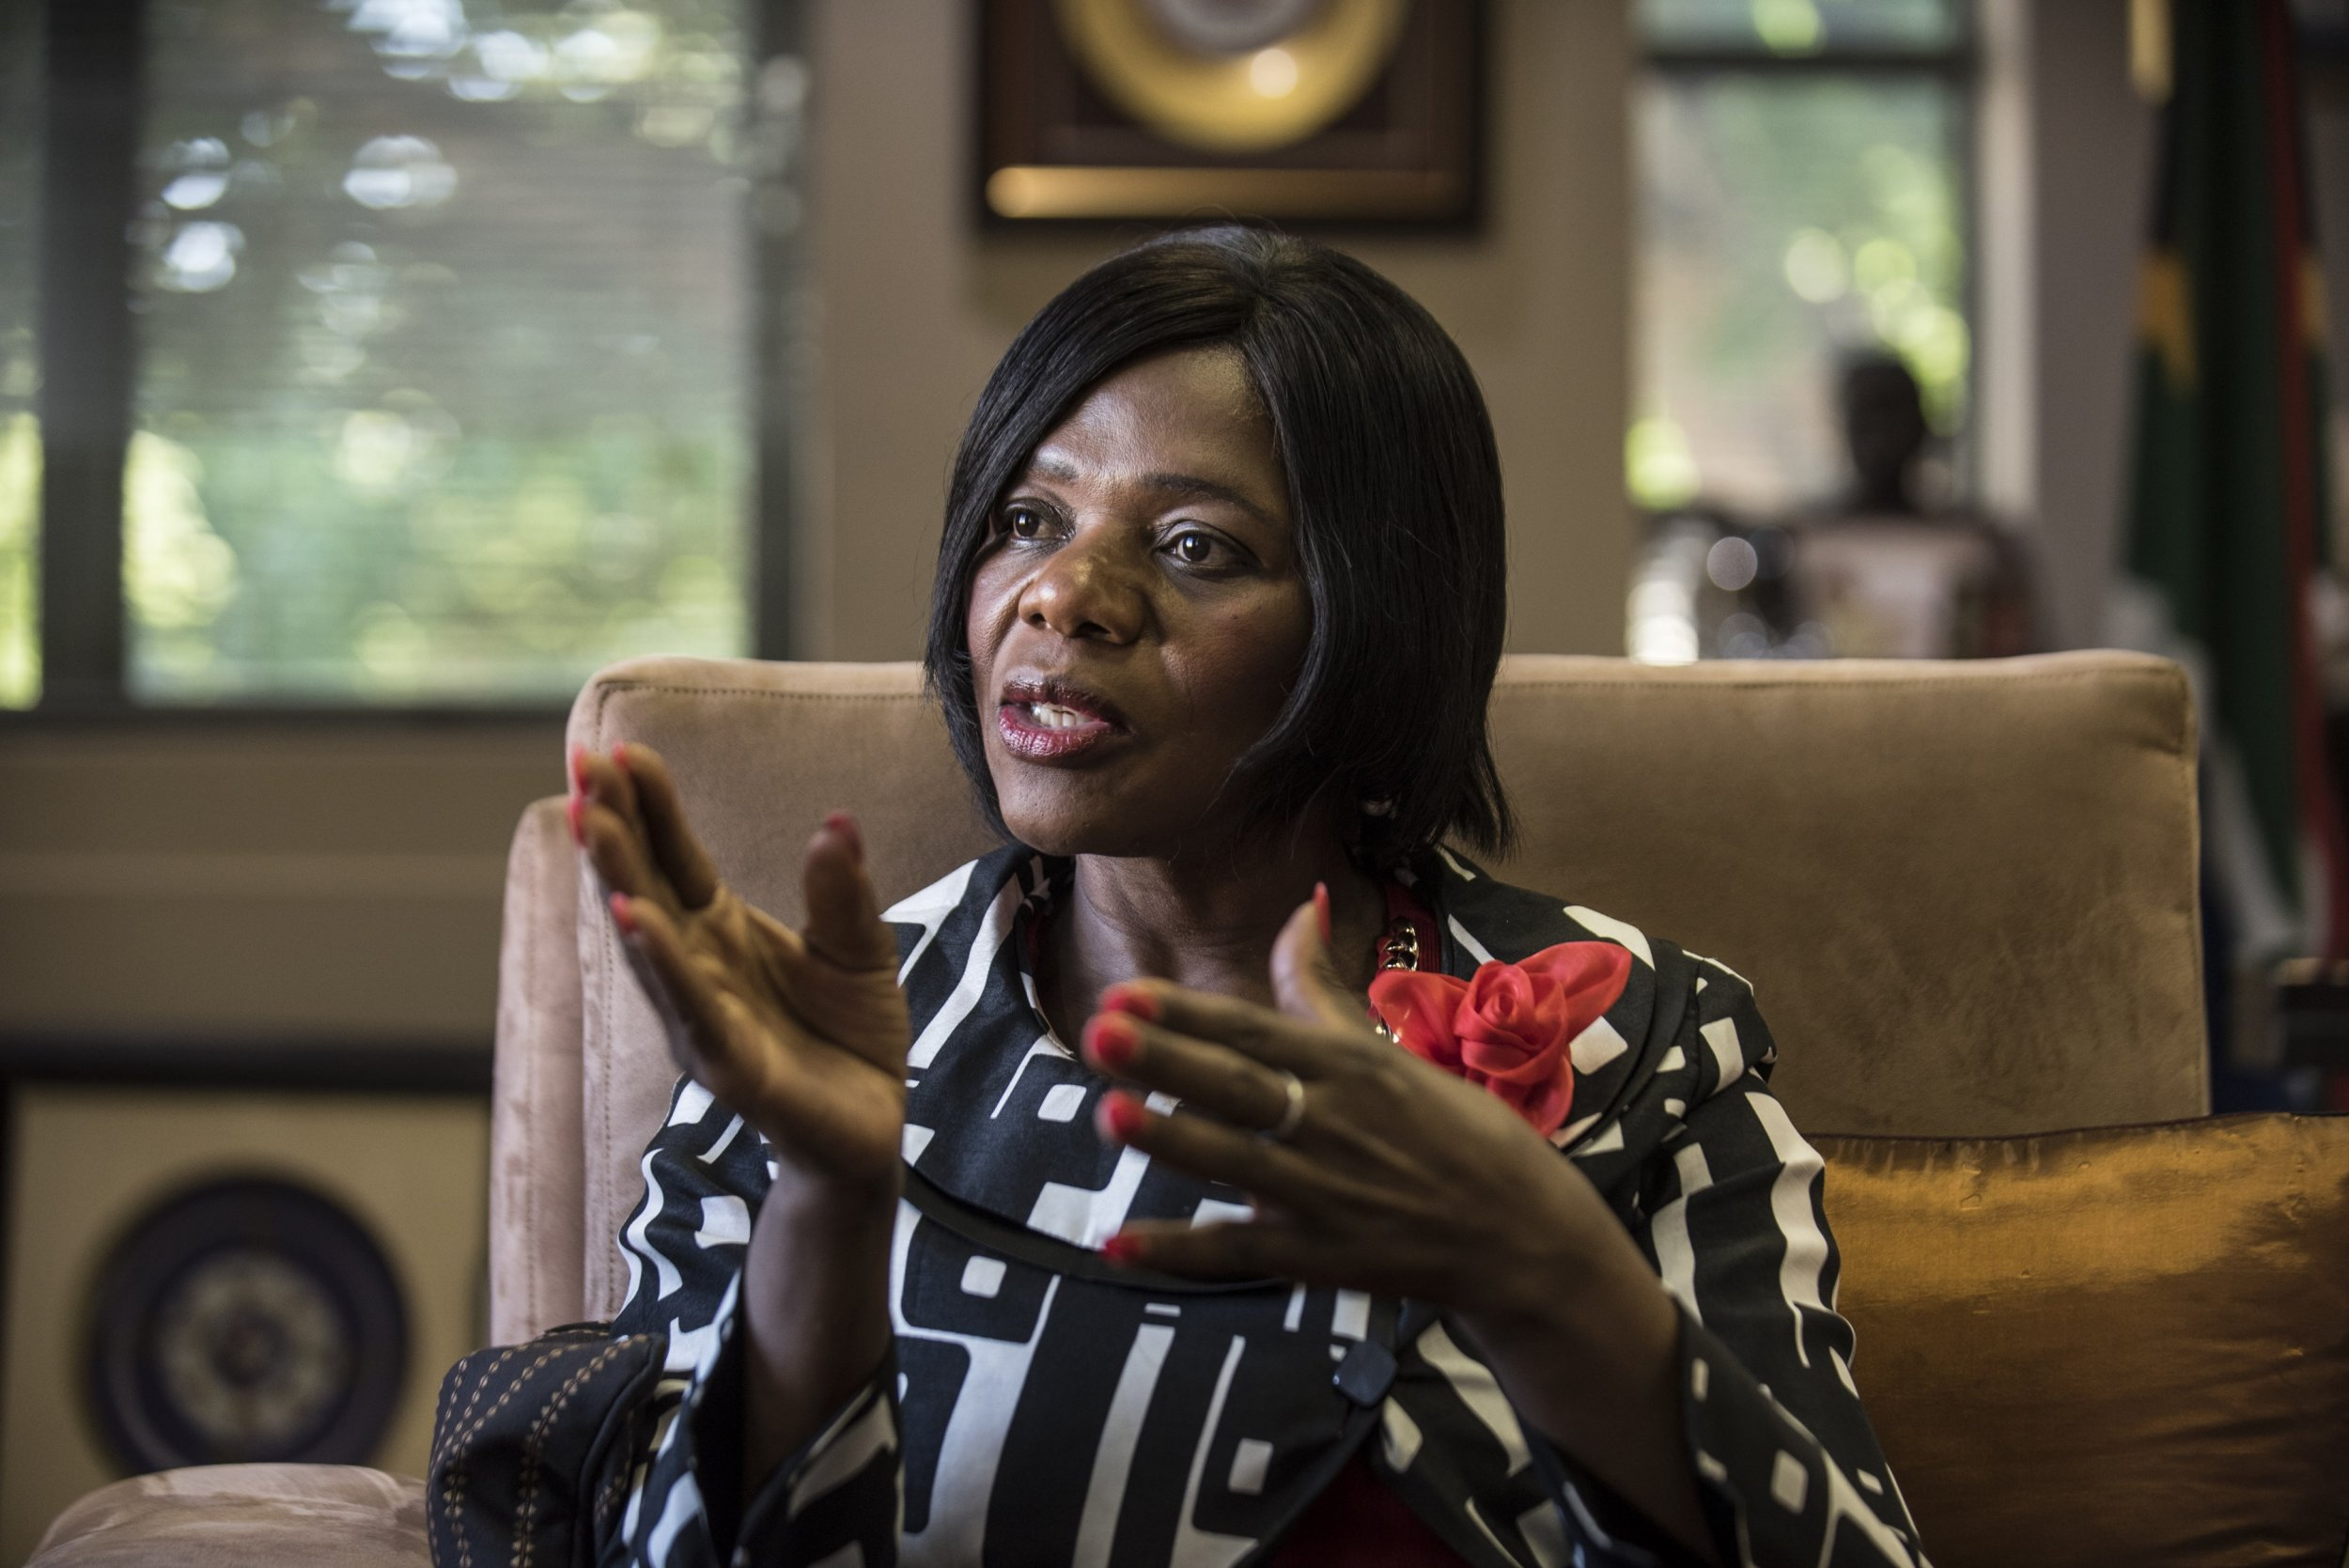 South Africa's Public Protector Thuli Madonsela.